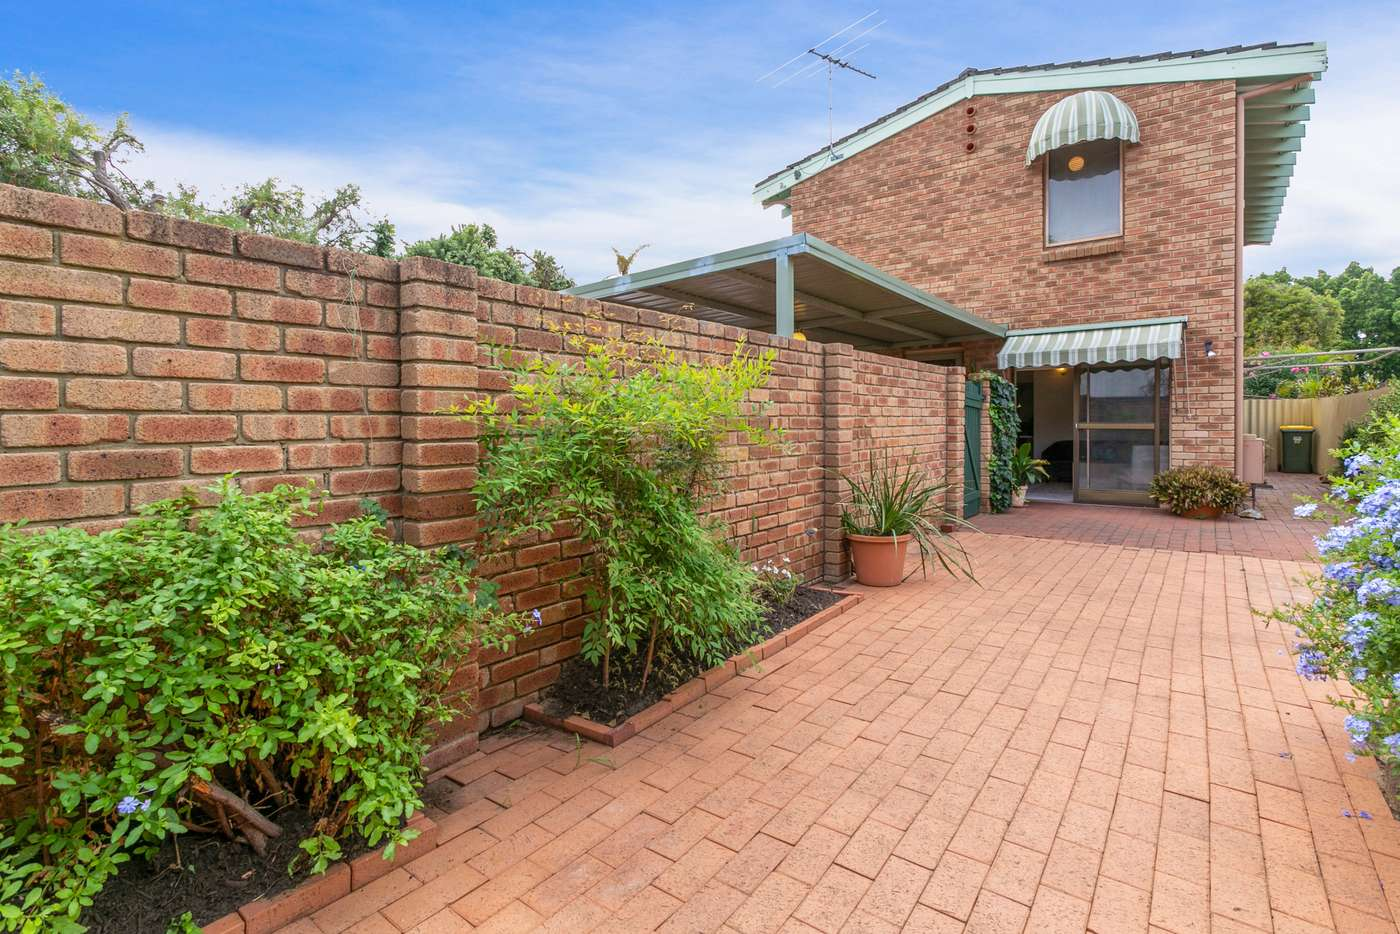 Main view of Homely house listing, 1/28 Violet Grove, Shenton Park WA 6008